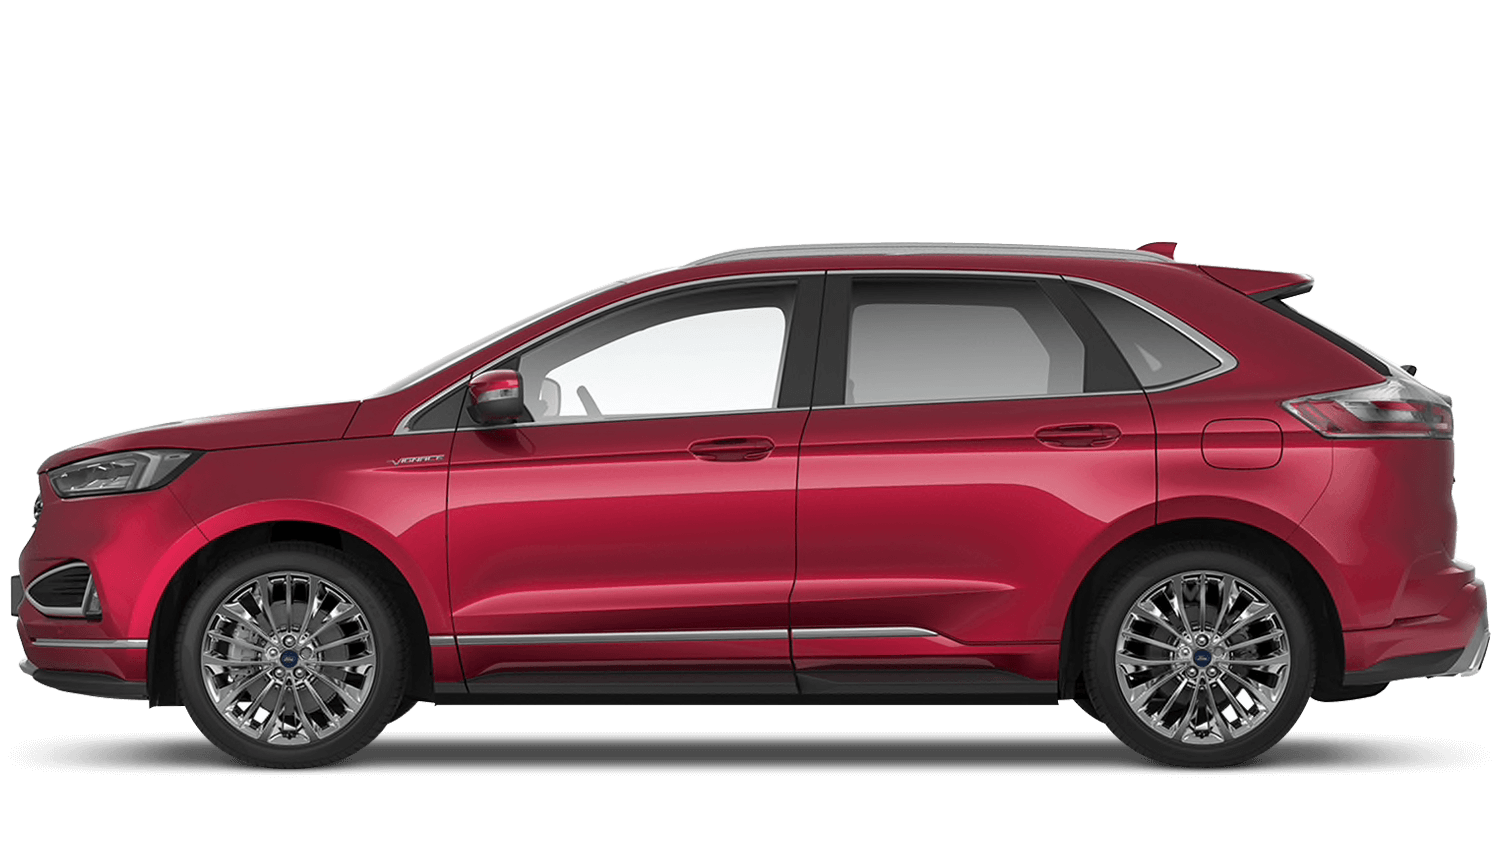 Ruby Red (Exclusive) New Ford Edge